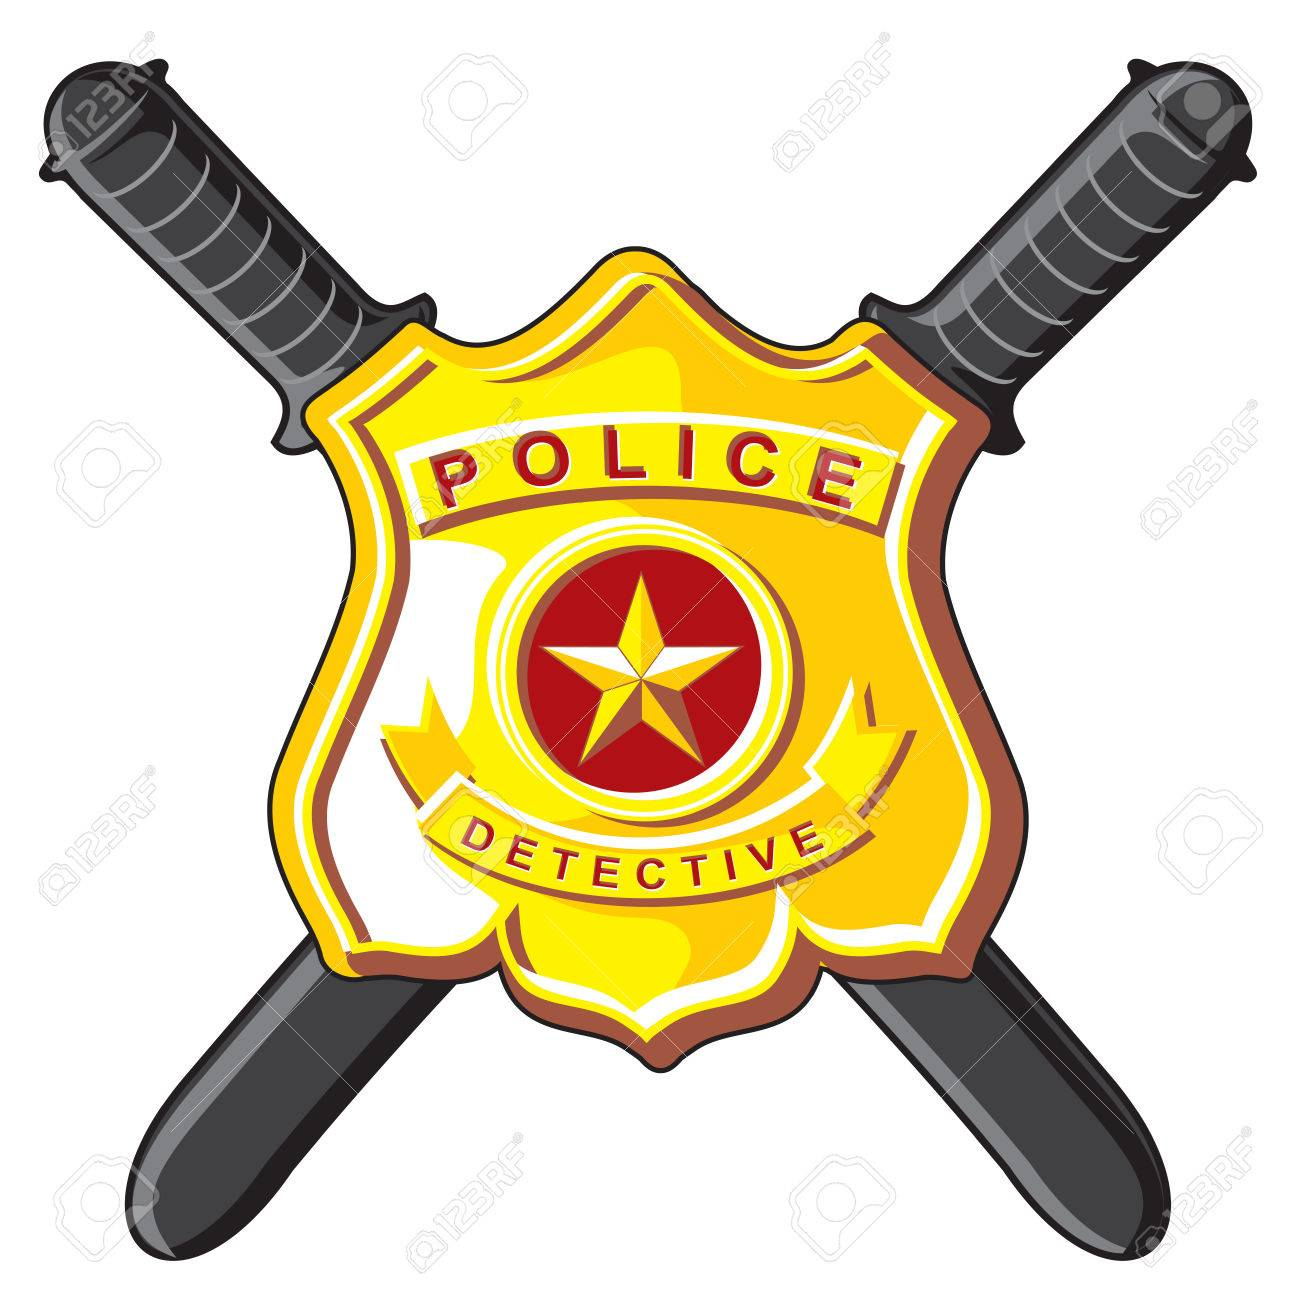 Police Symbols Metal Badge And Crossbones Batons Royalty Free